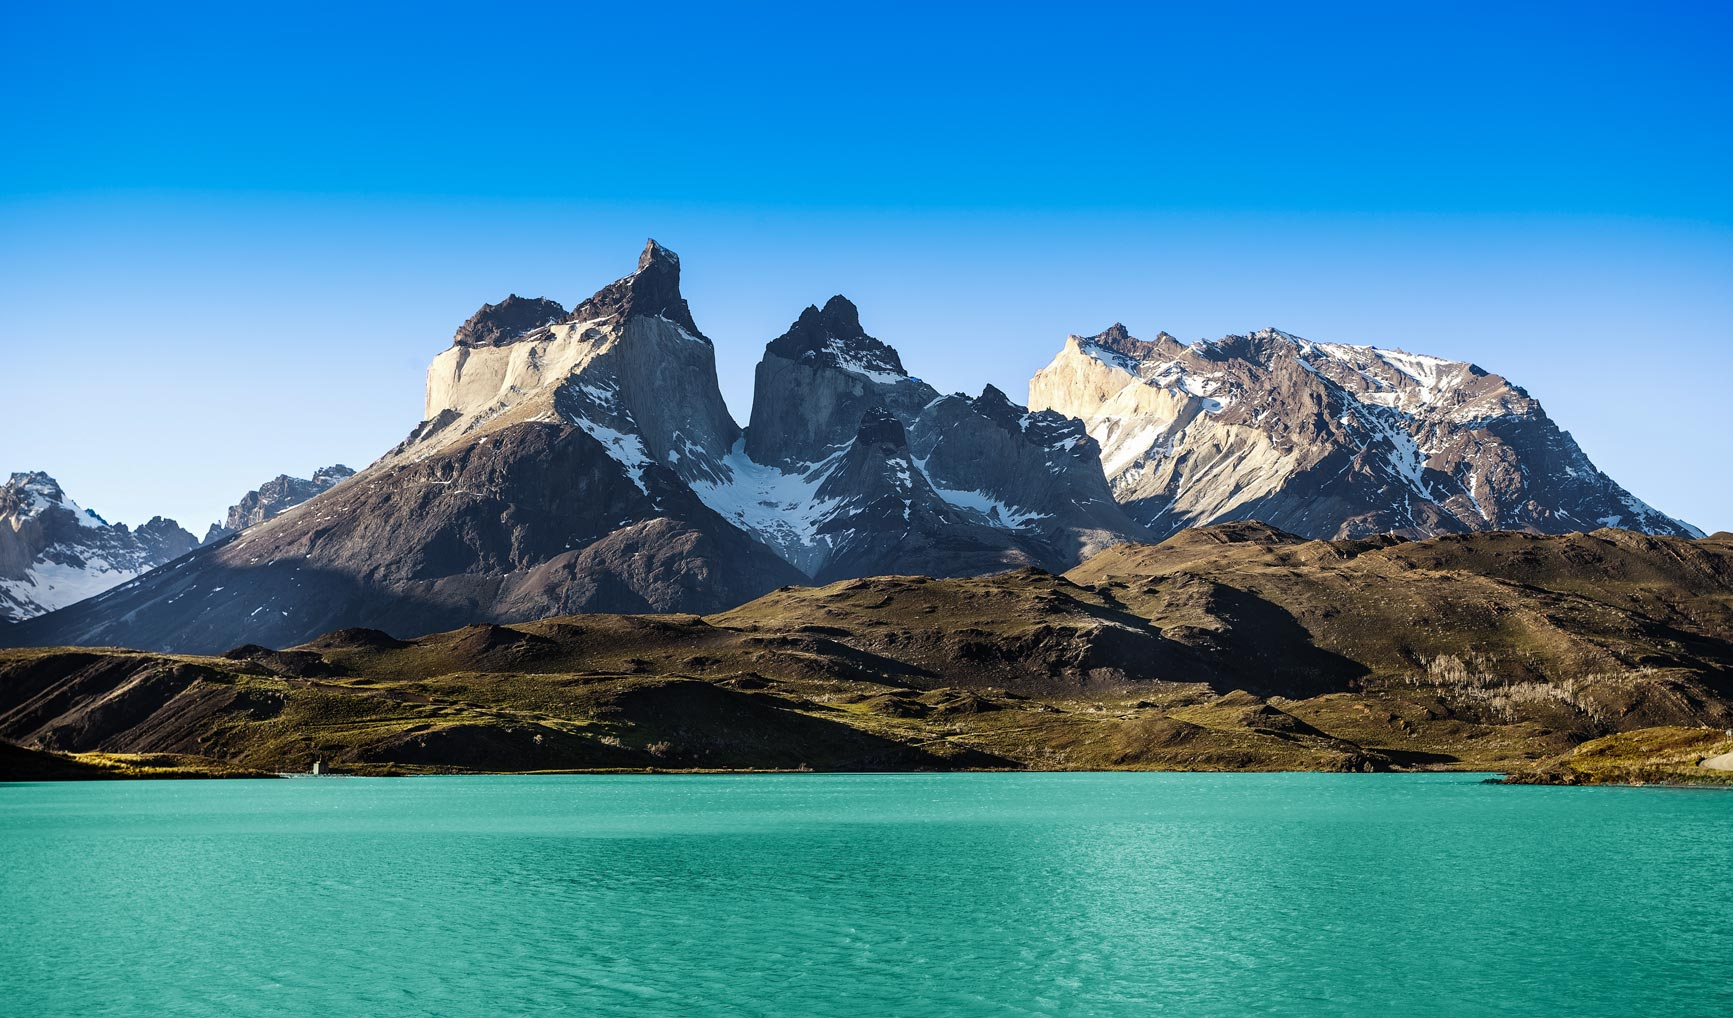 patagonia travel argentina lonely planet - HD1733×1018